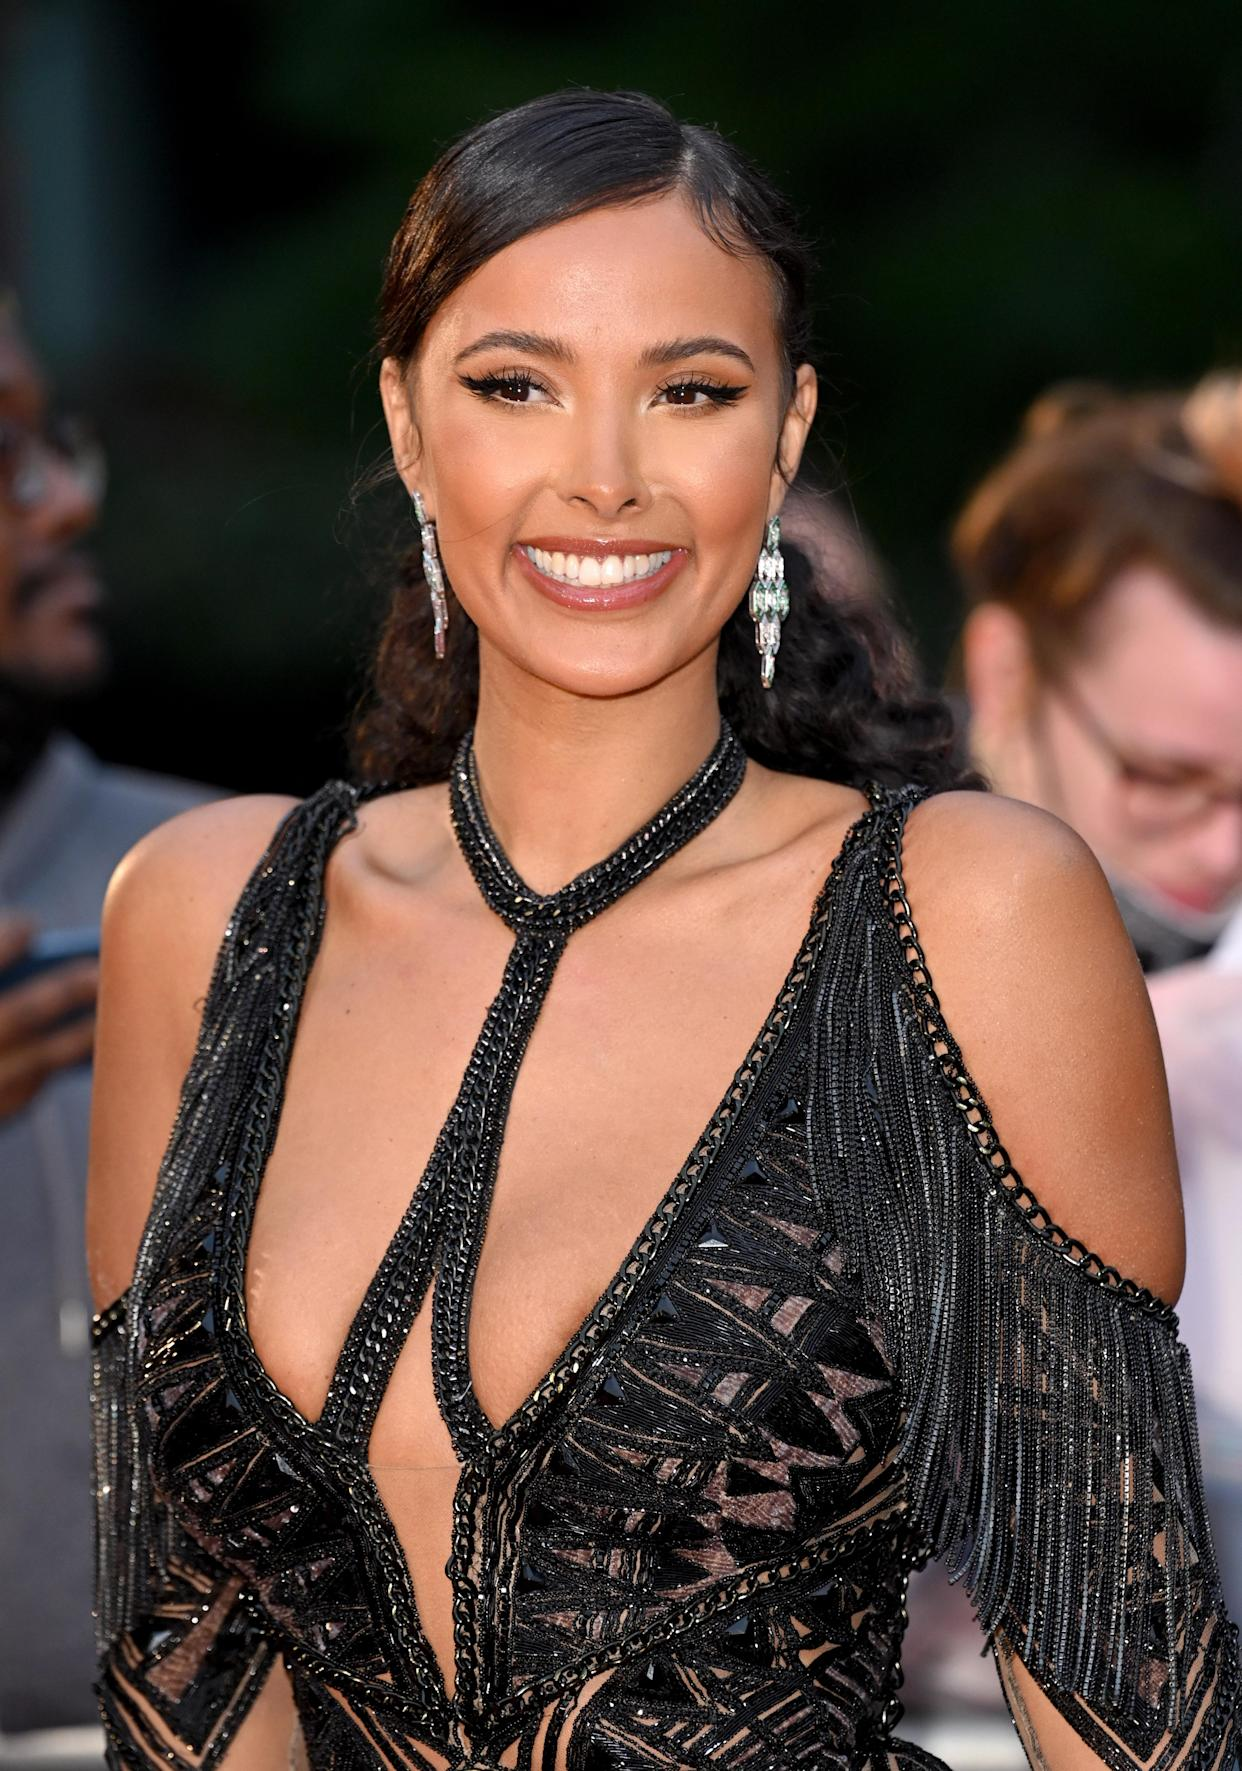 LONDON, ENGLAND - SEPTEMBER 01: Maya Jama attends the GQ Men Of The Year Awards 2021 at Tate Modern on September 01, 2021 in London, England. (Photo by Karwai Tang/WireImage)